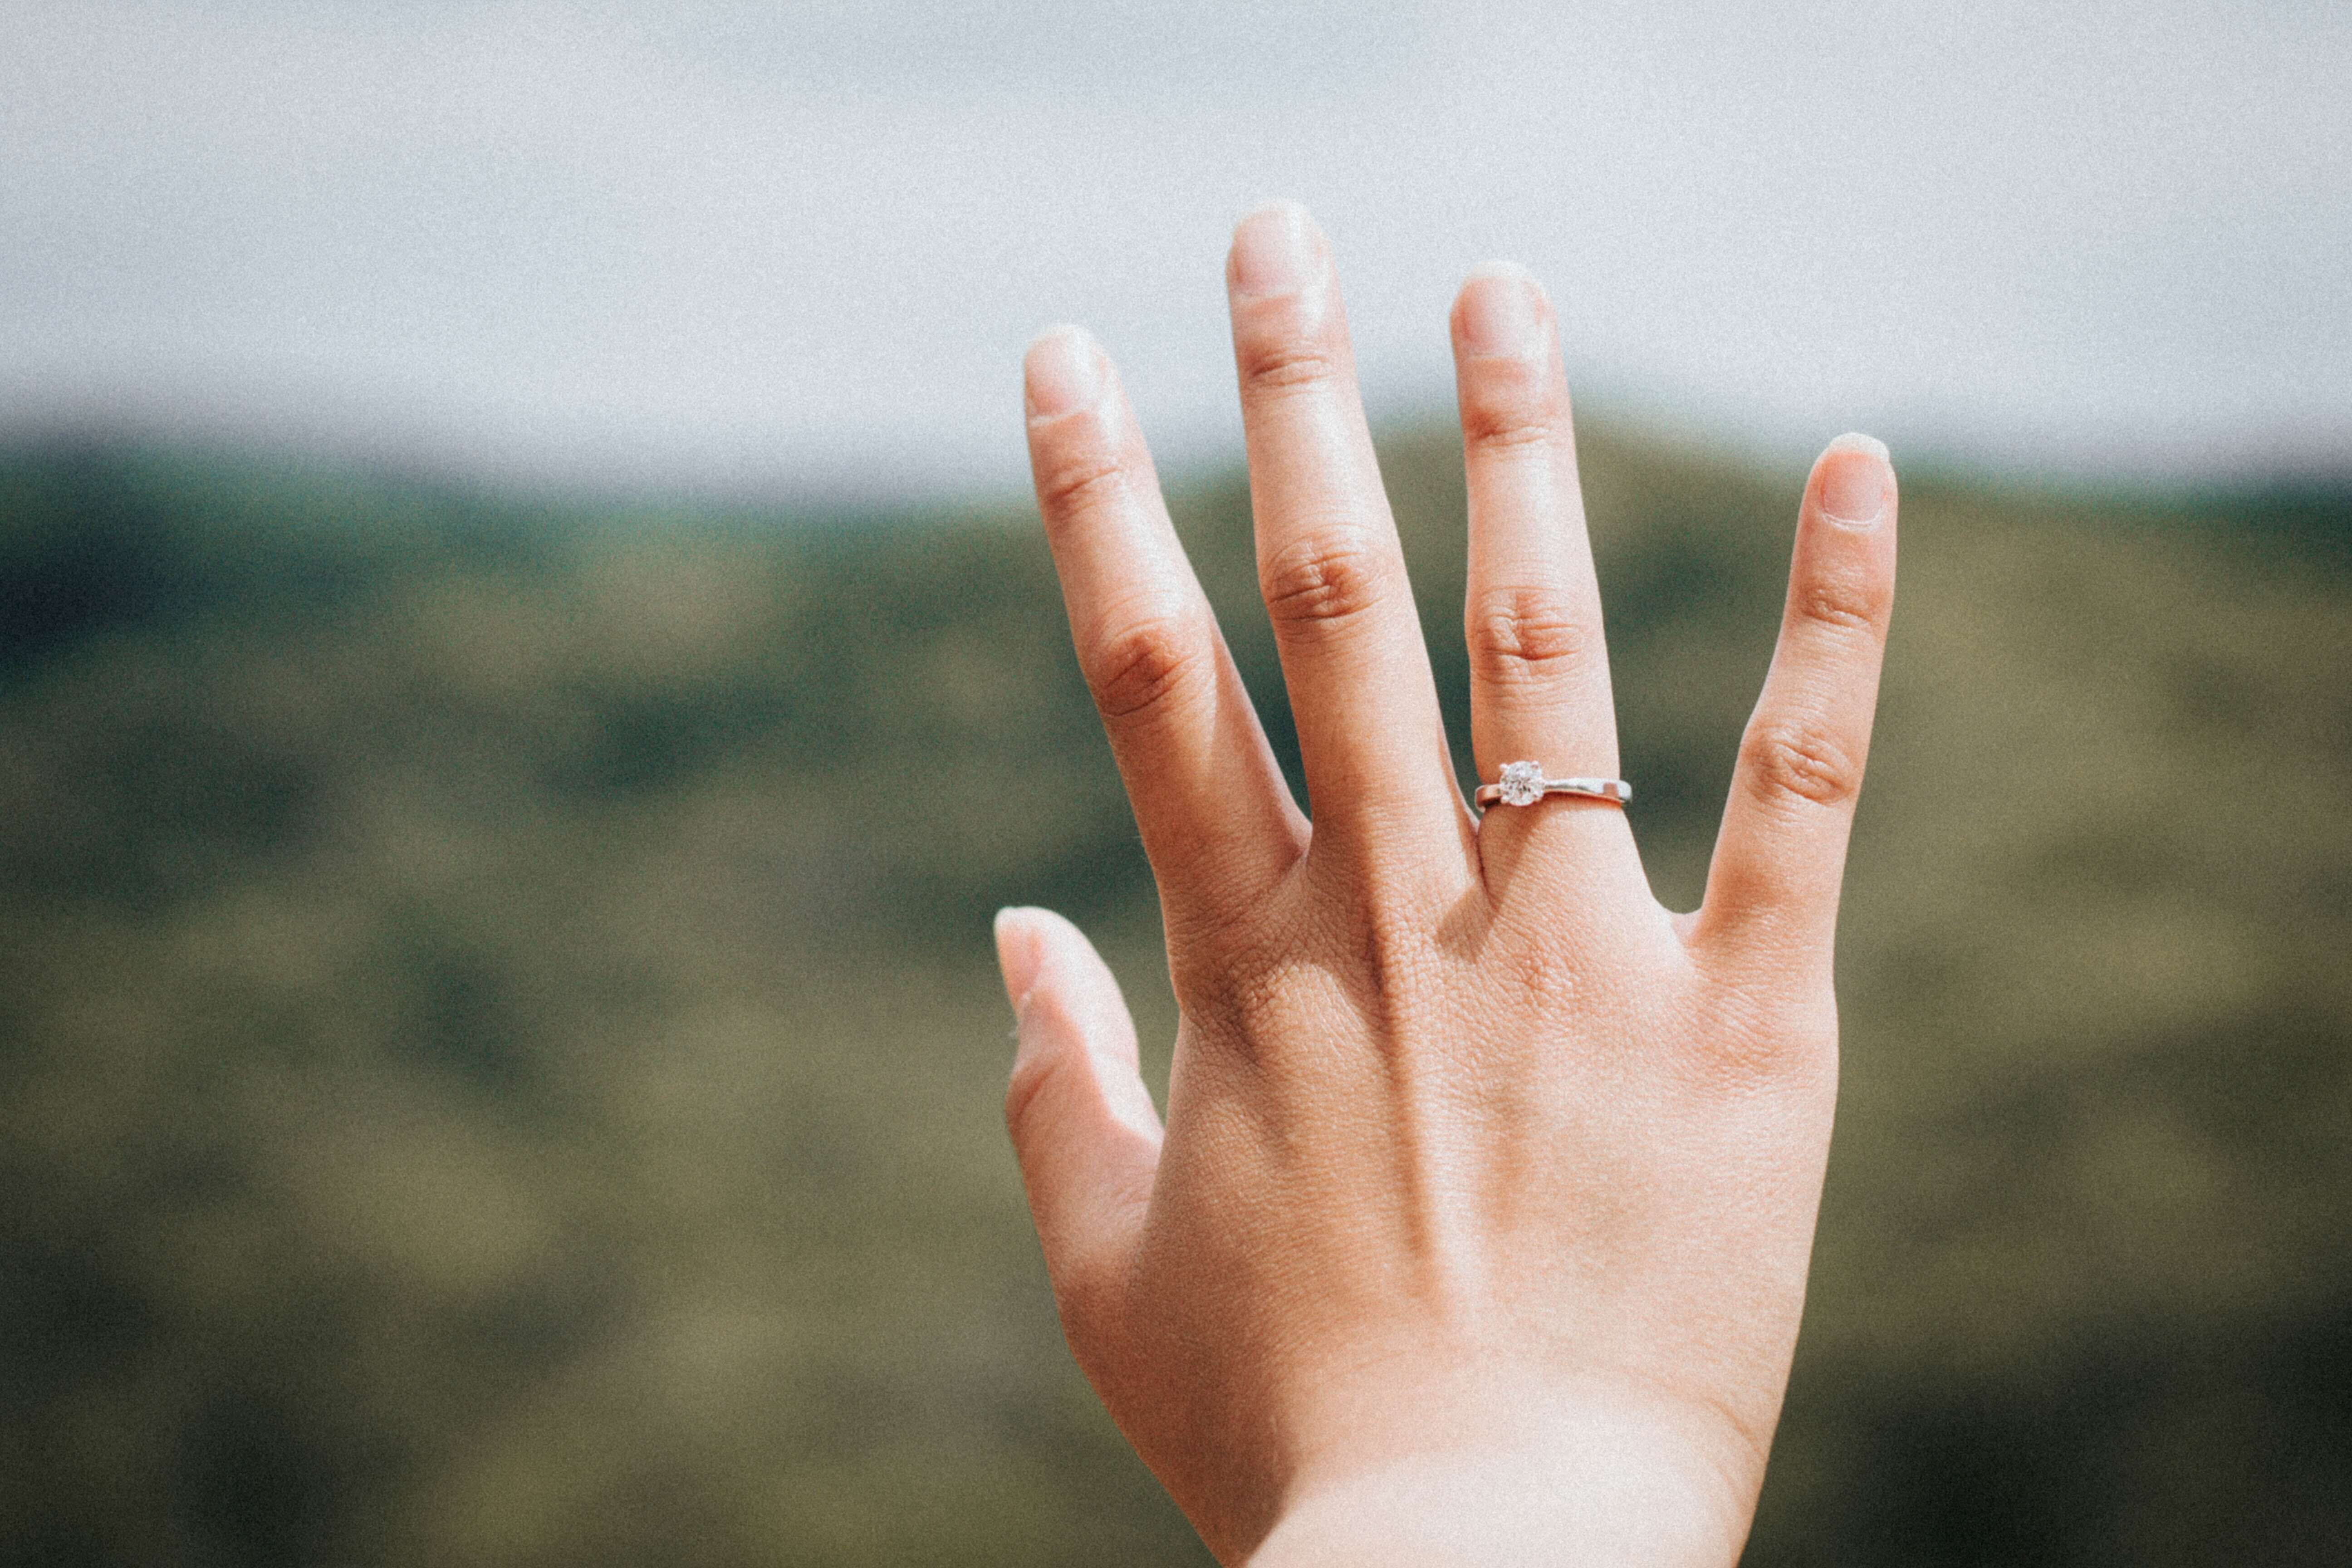 Right Hand Diamond Ring | Find Out Why You Need One with our 5 minute guide